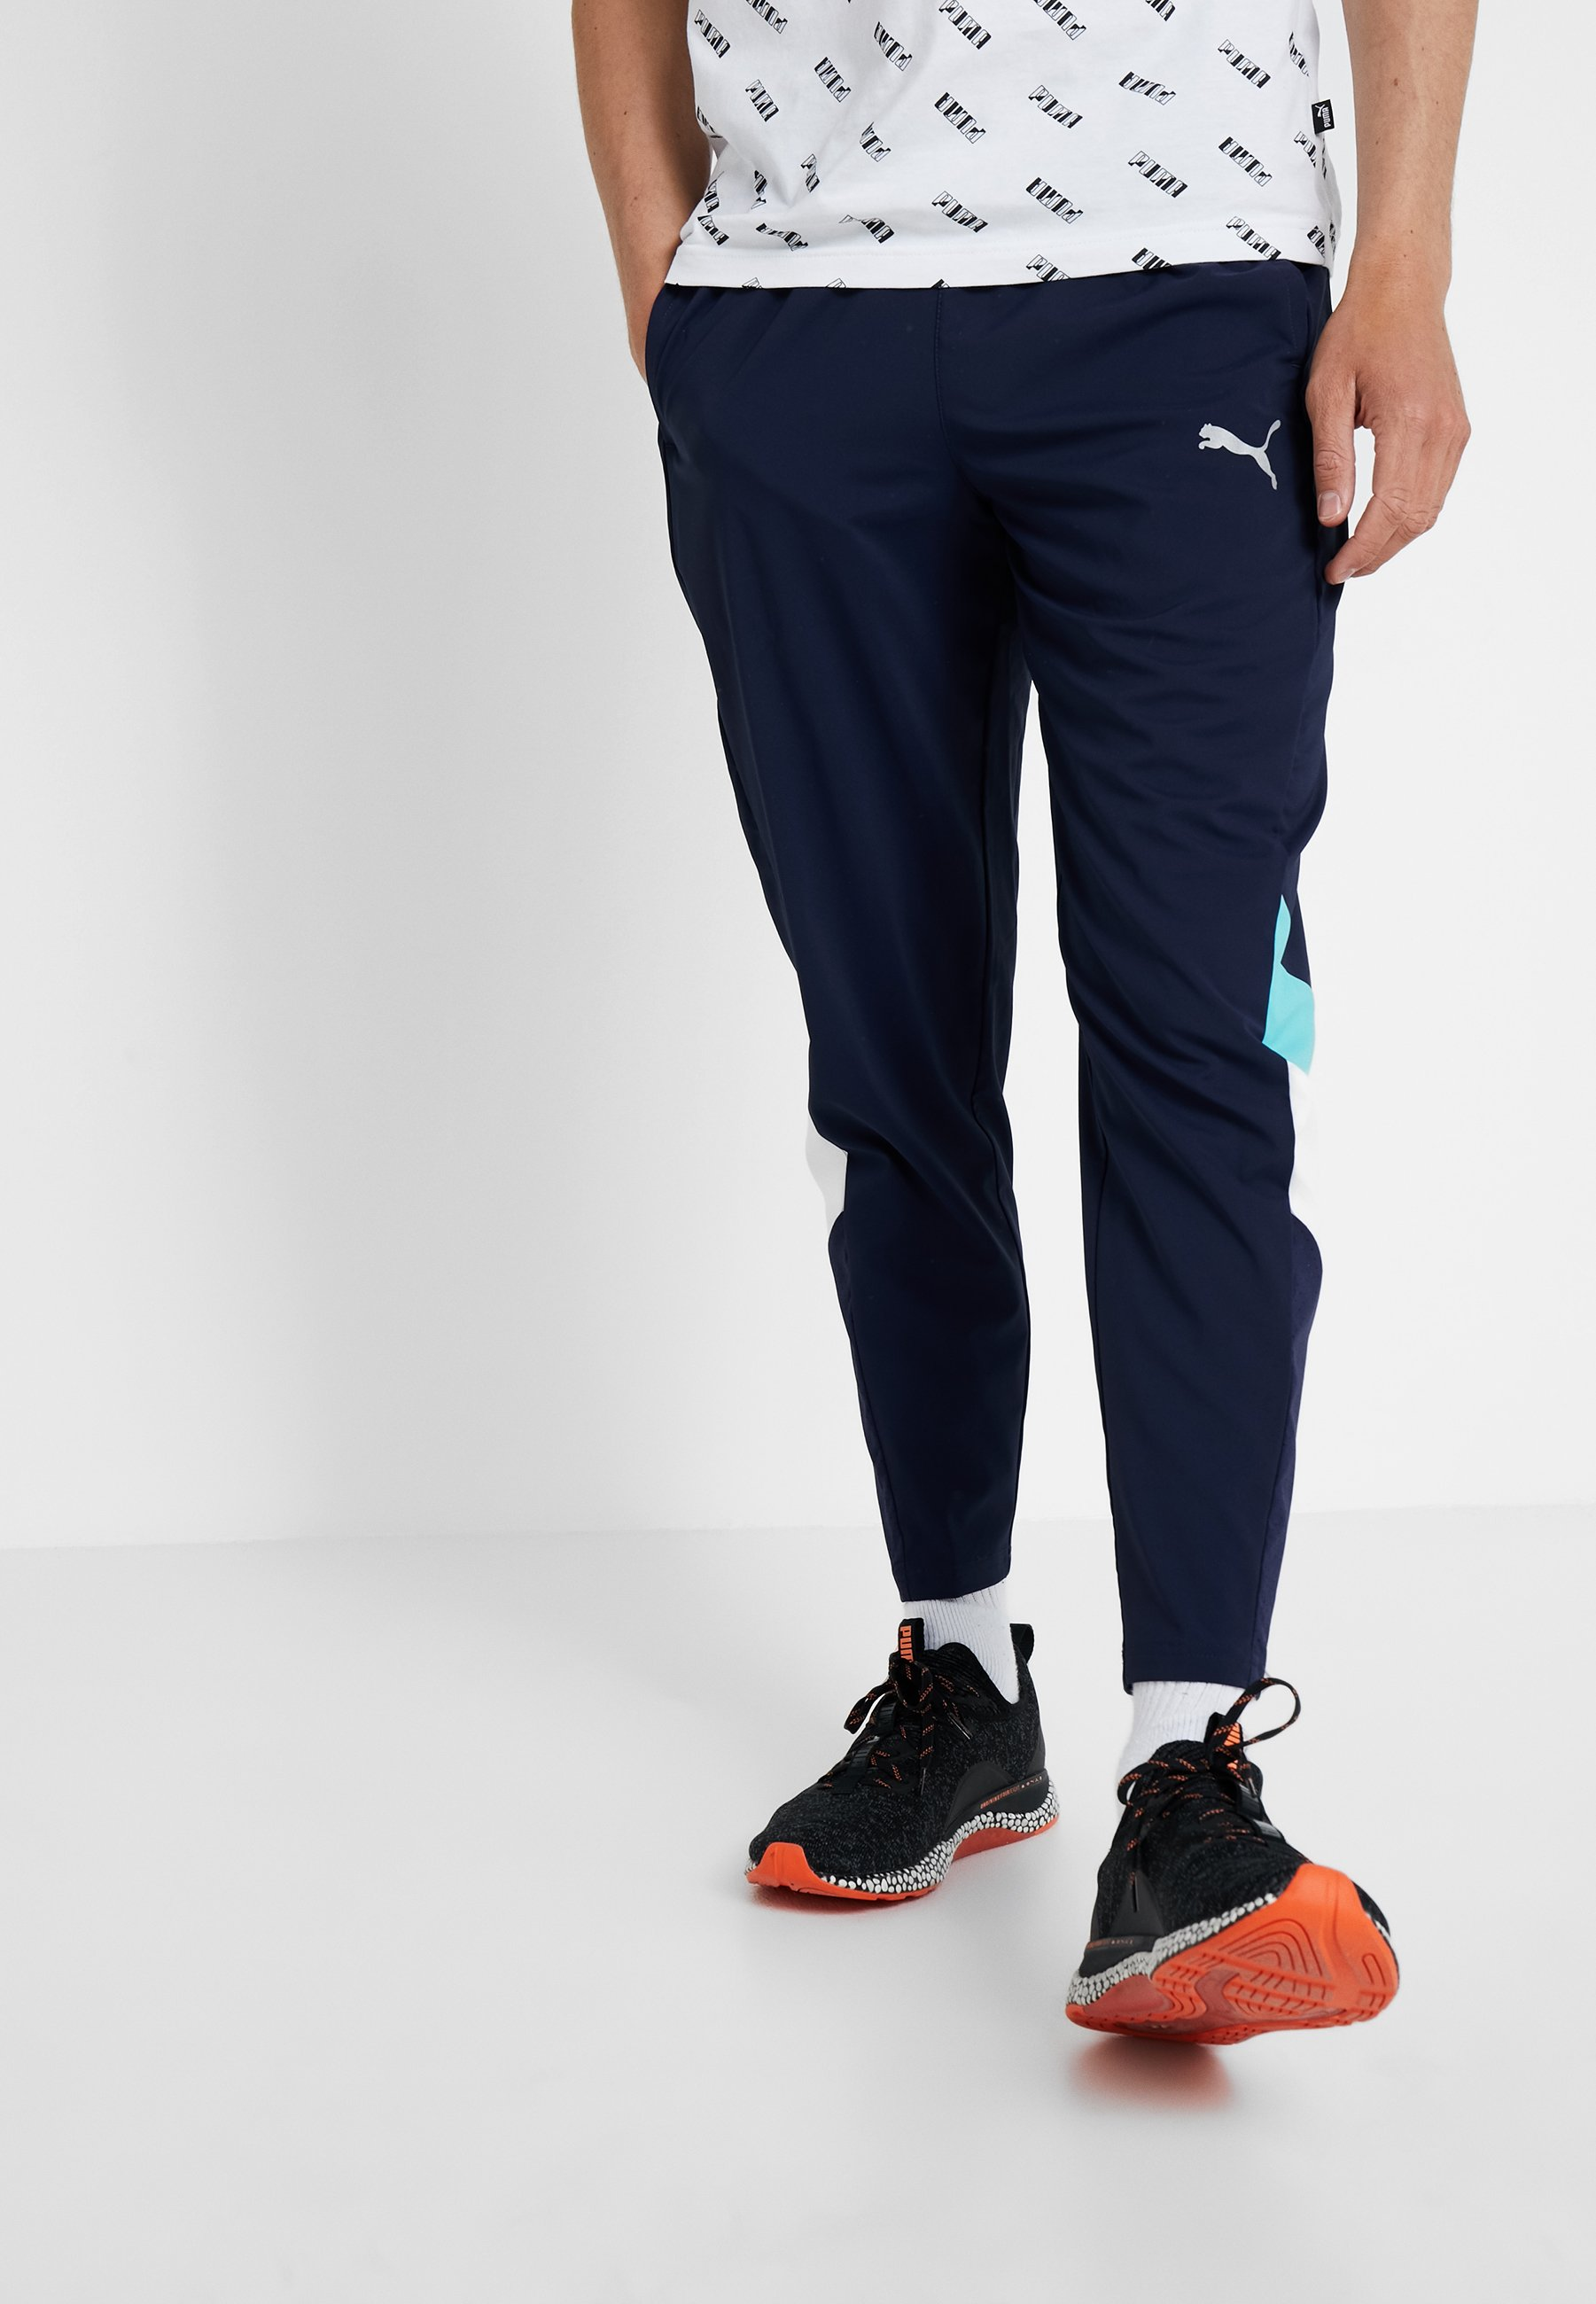 Reactive Puma Packable Peacoat PantPantalon white Survêtement De Blue turquoise mN80nwvO